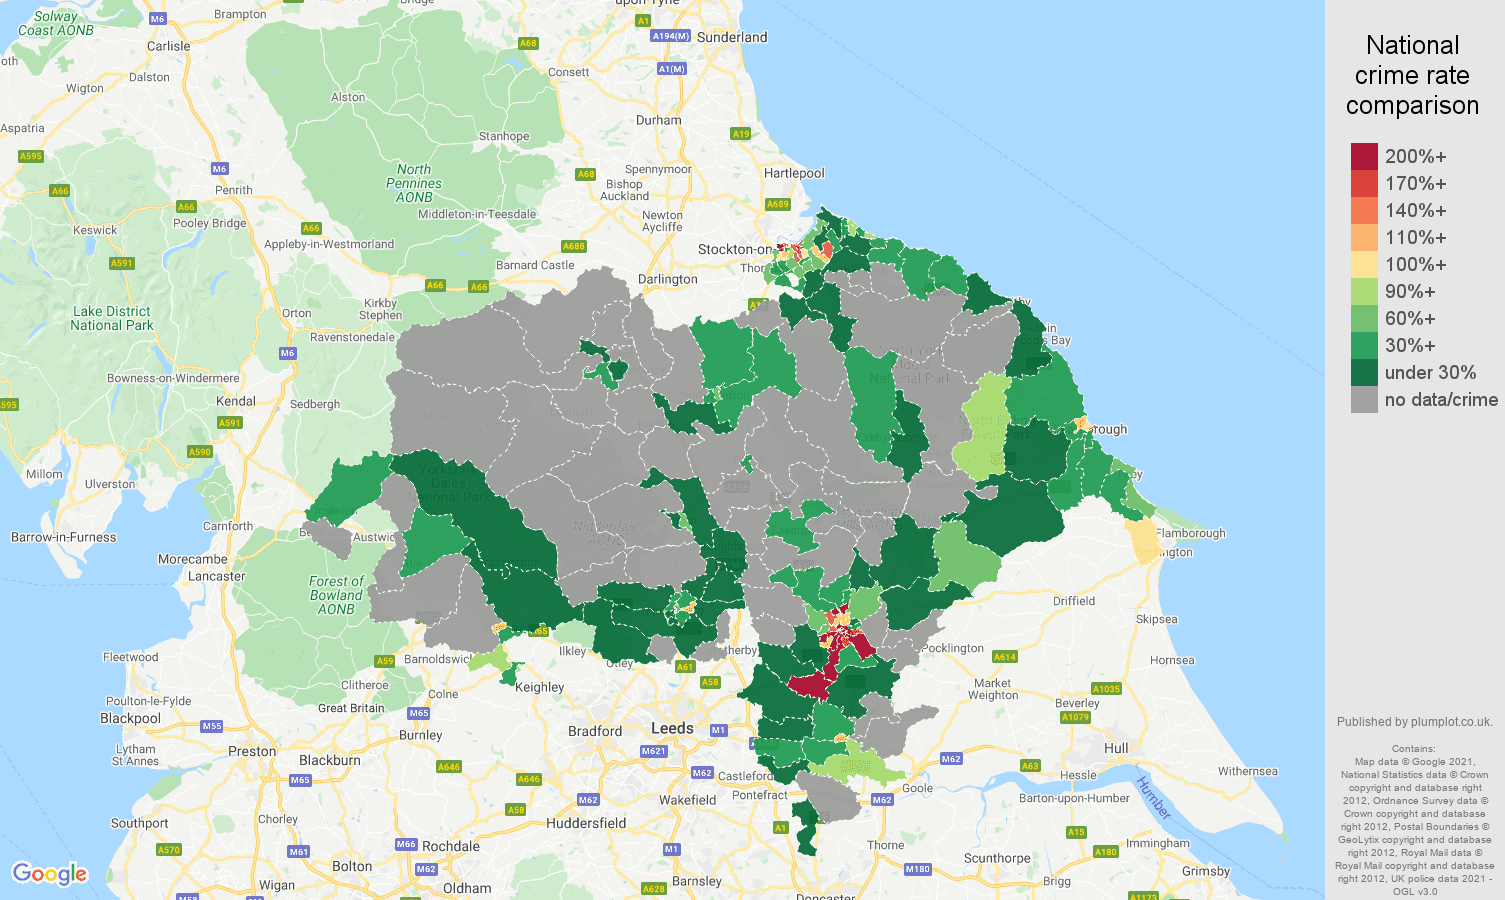 North Yorkshire bicycle theft crime rate comparison map